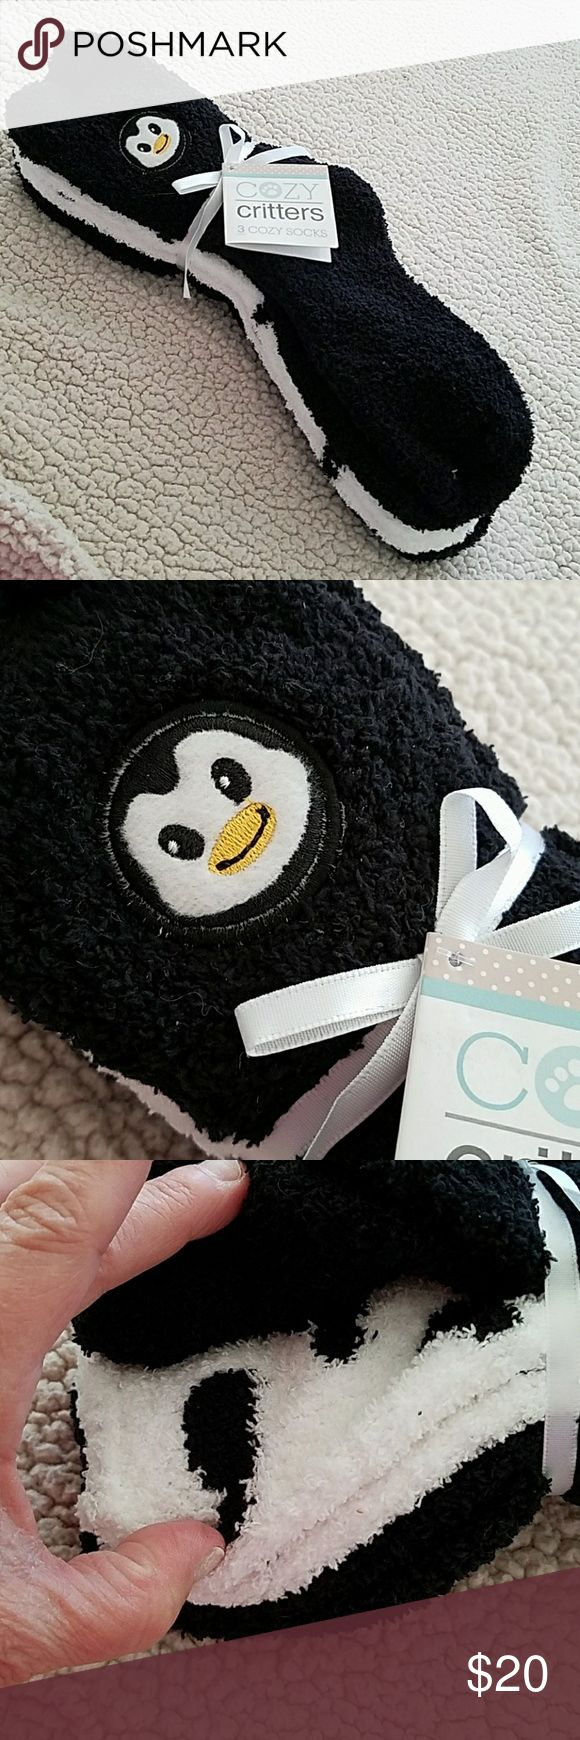 Women's Cozy Critters 3 Pairs Of Ankle High Socks This is for three pairs of brand new women's Cozy Critters ankle high cozy socks. One is black with a penguin on it the other is white with black in color hearts and the other pair is solid black. In case you would like to give these as a gift inside the Cozy Critters card is a to and from form. Cozy Critters Accessories Hosiery & Socks